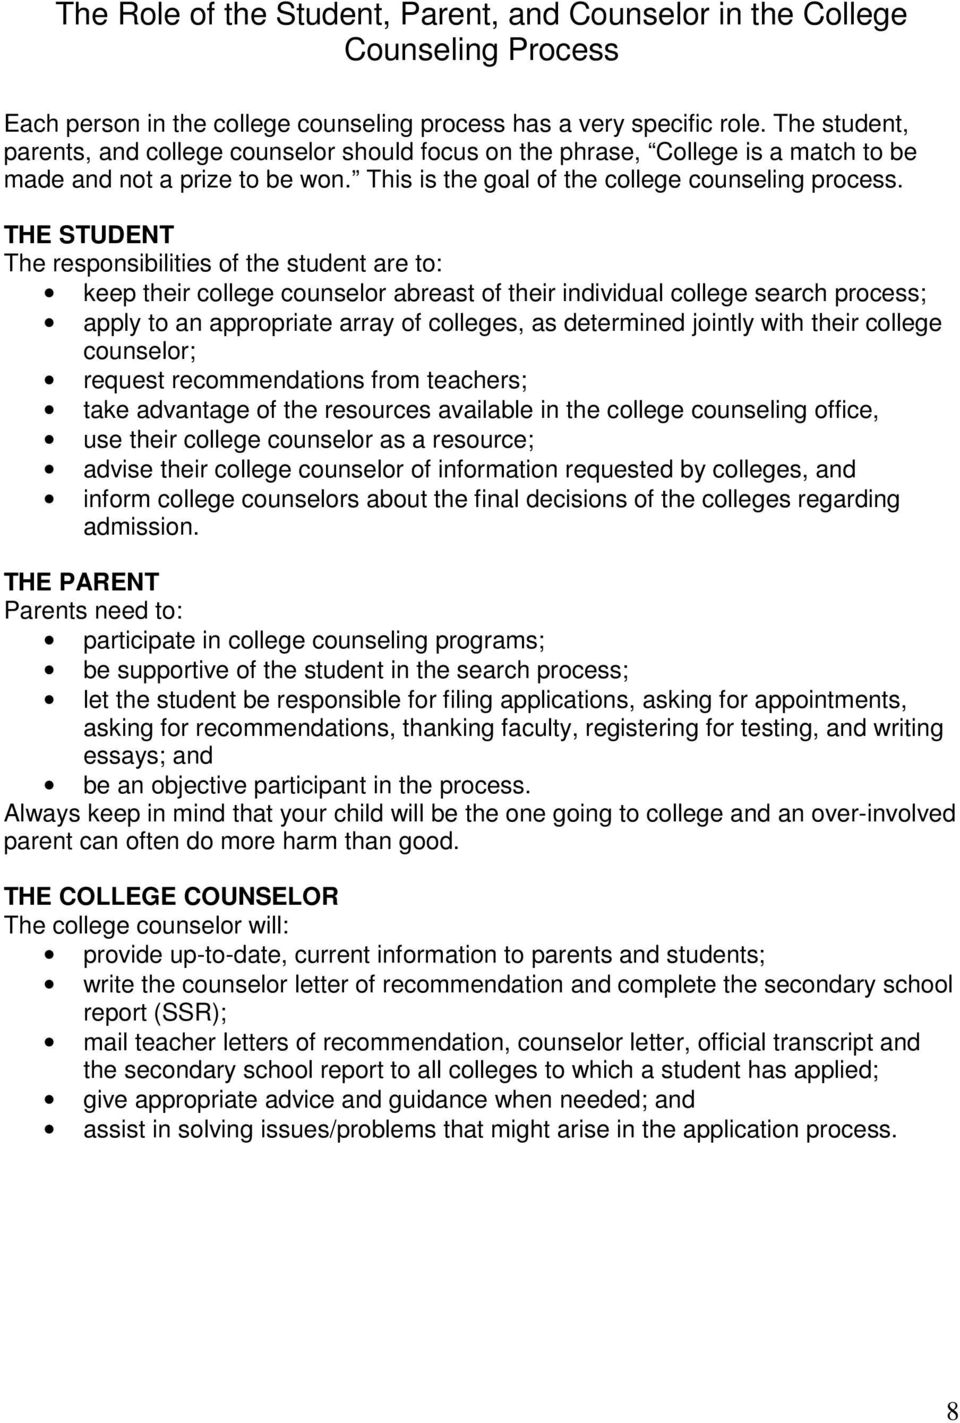 THE STUDENT The responsibilities of the student are to: keep their college counselor abreast of their individual college search process; apply to an appropriate array of colleges, as determined